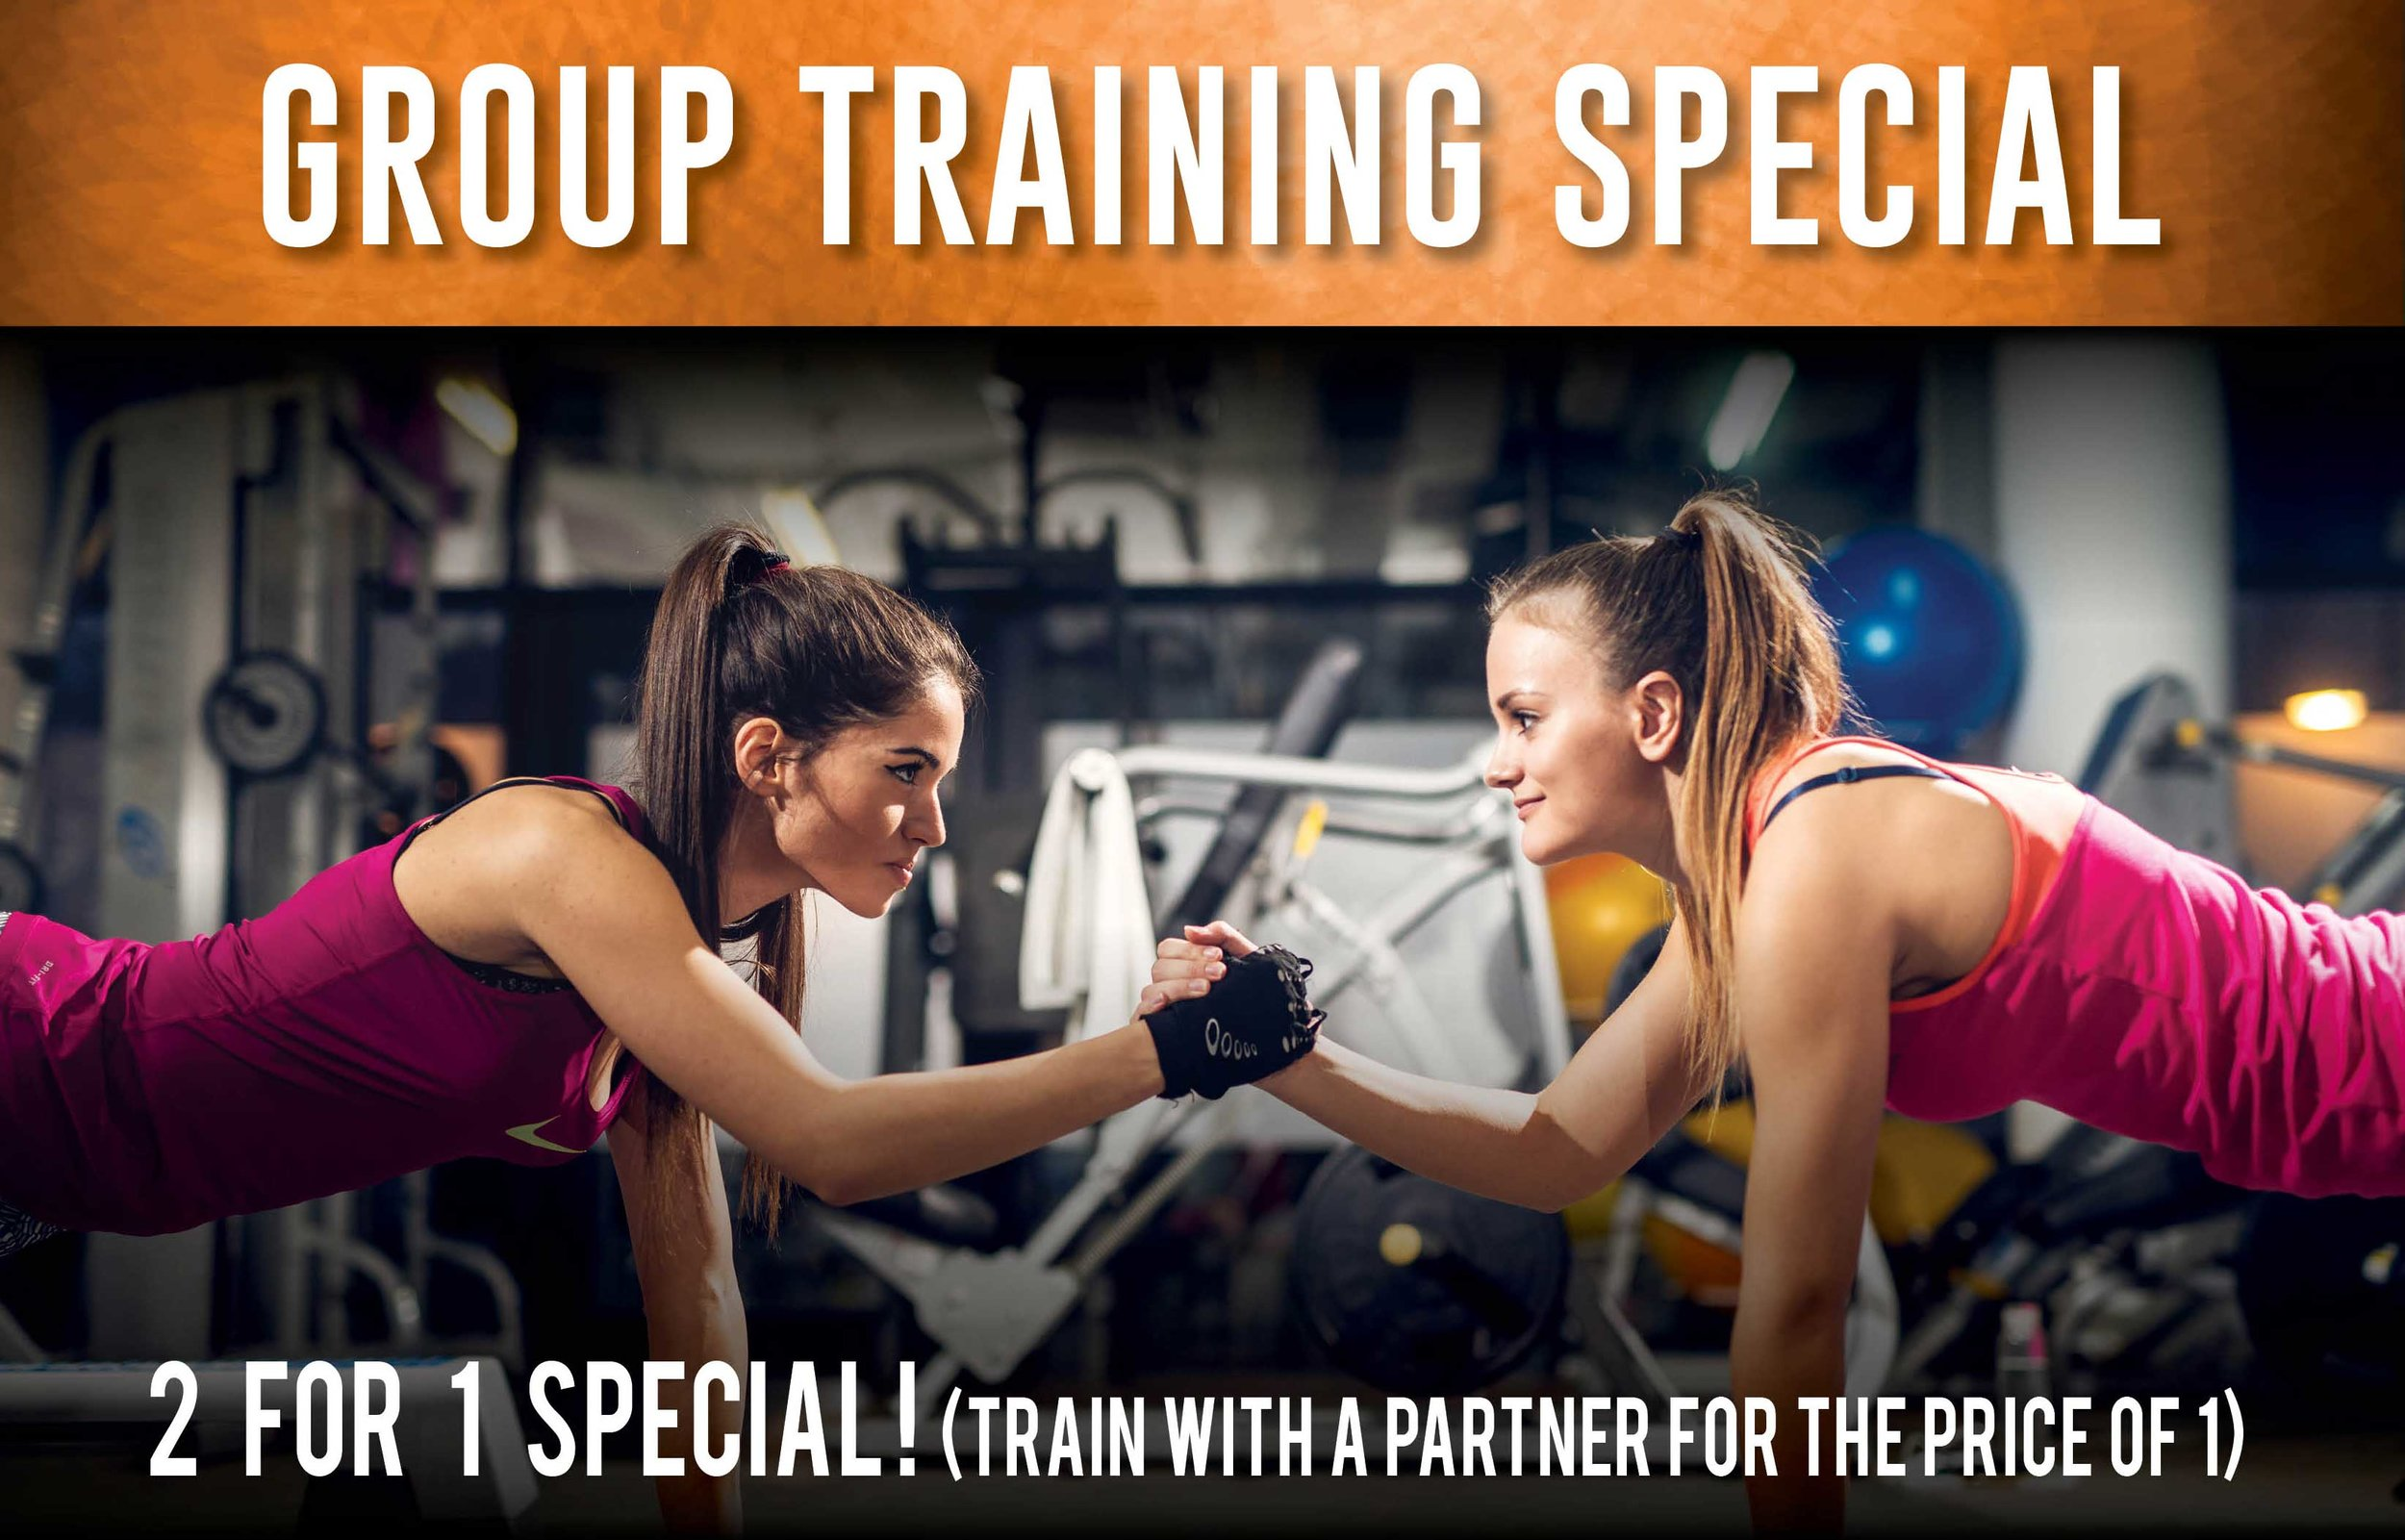 Group Training Special